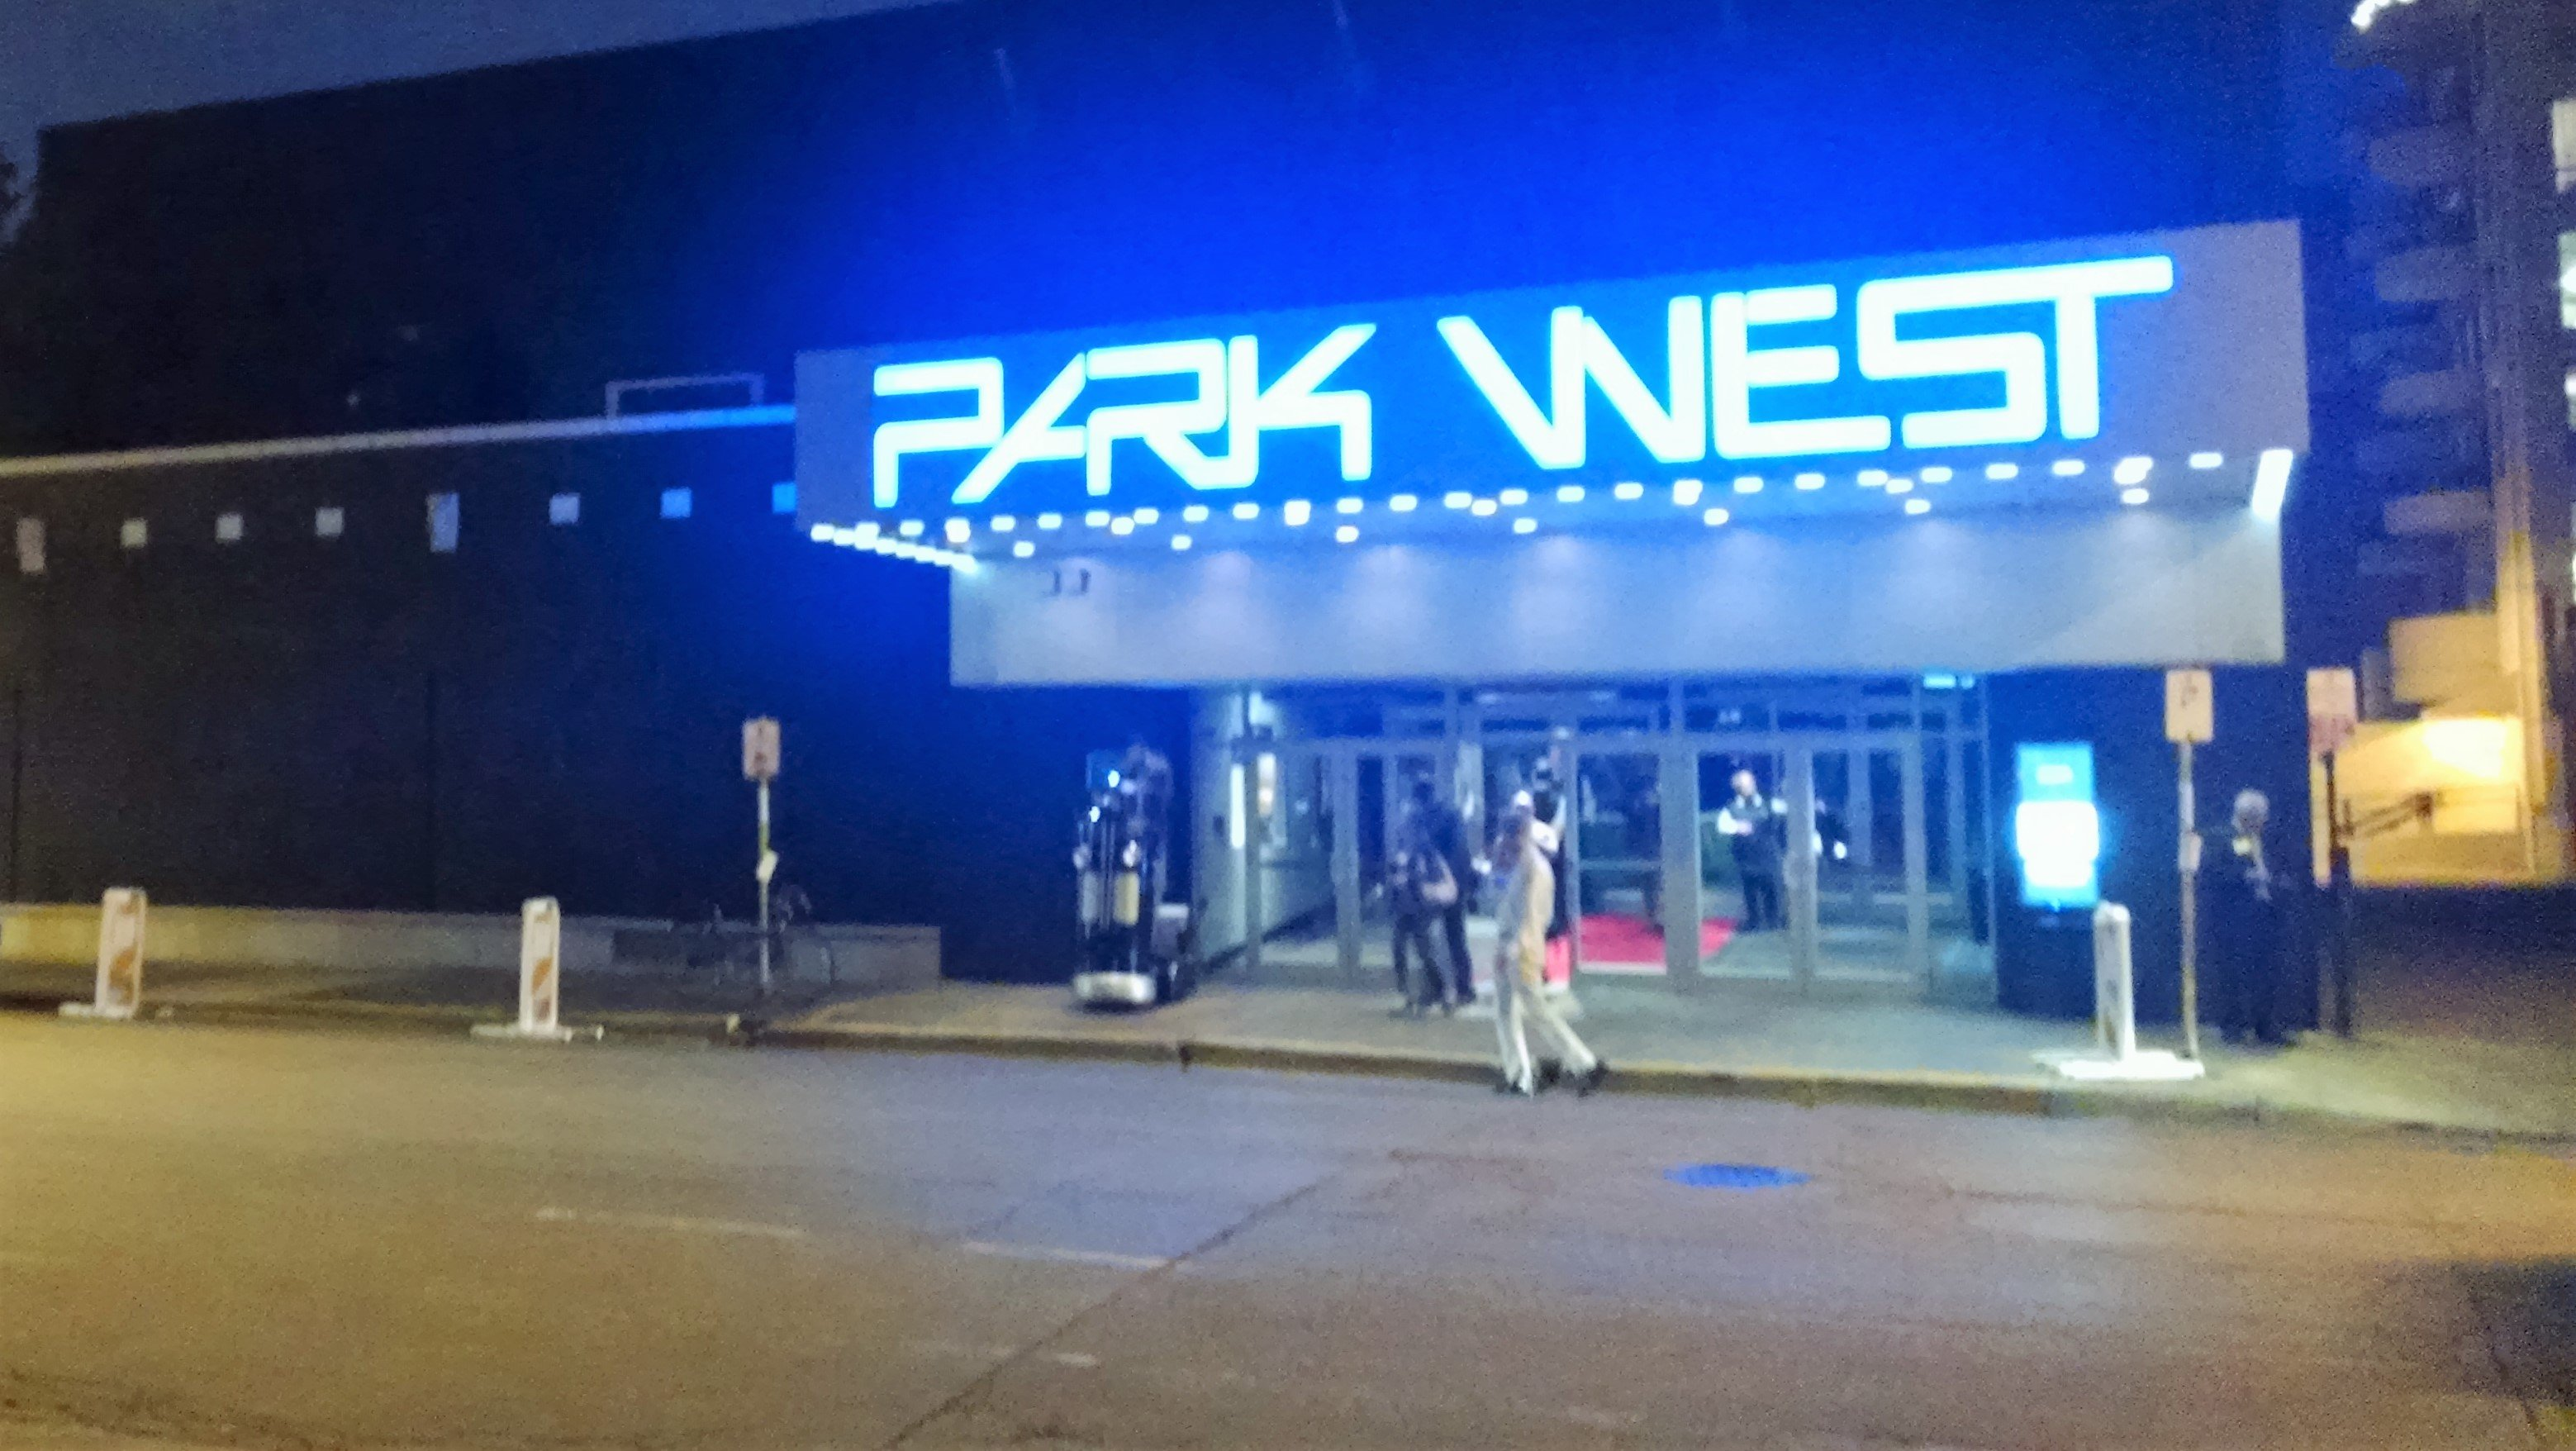 https://www.parkwestchicagoevents.com/wp-content/uploads/2019/02/Park-West-Exterior-Night-Sept-2017.jpg